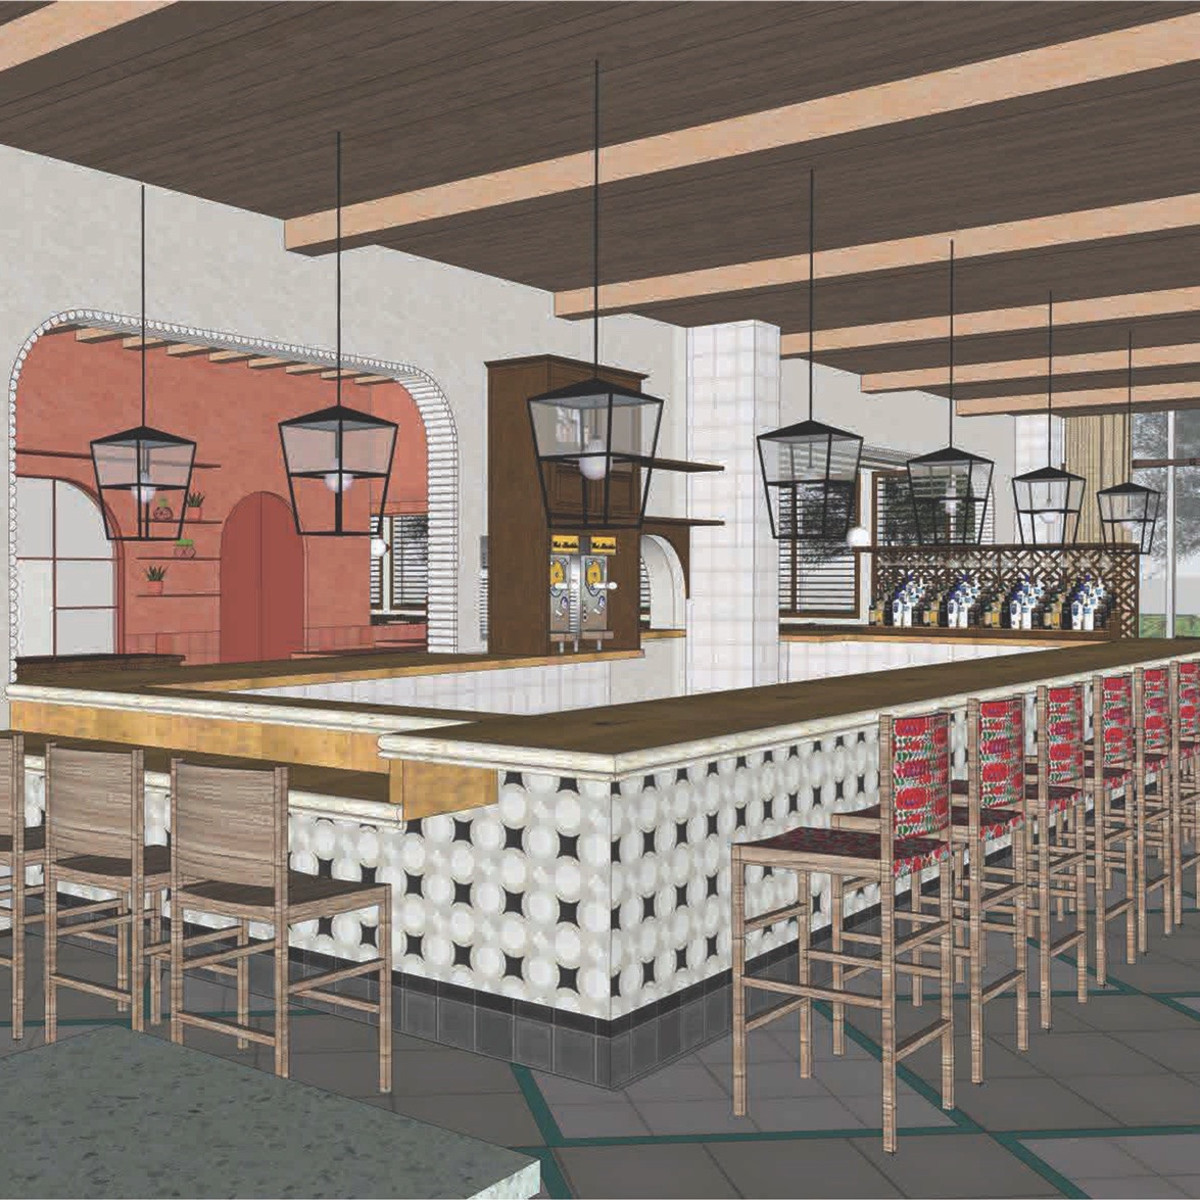 Original Ninfa's Uptown bar rendering